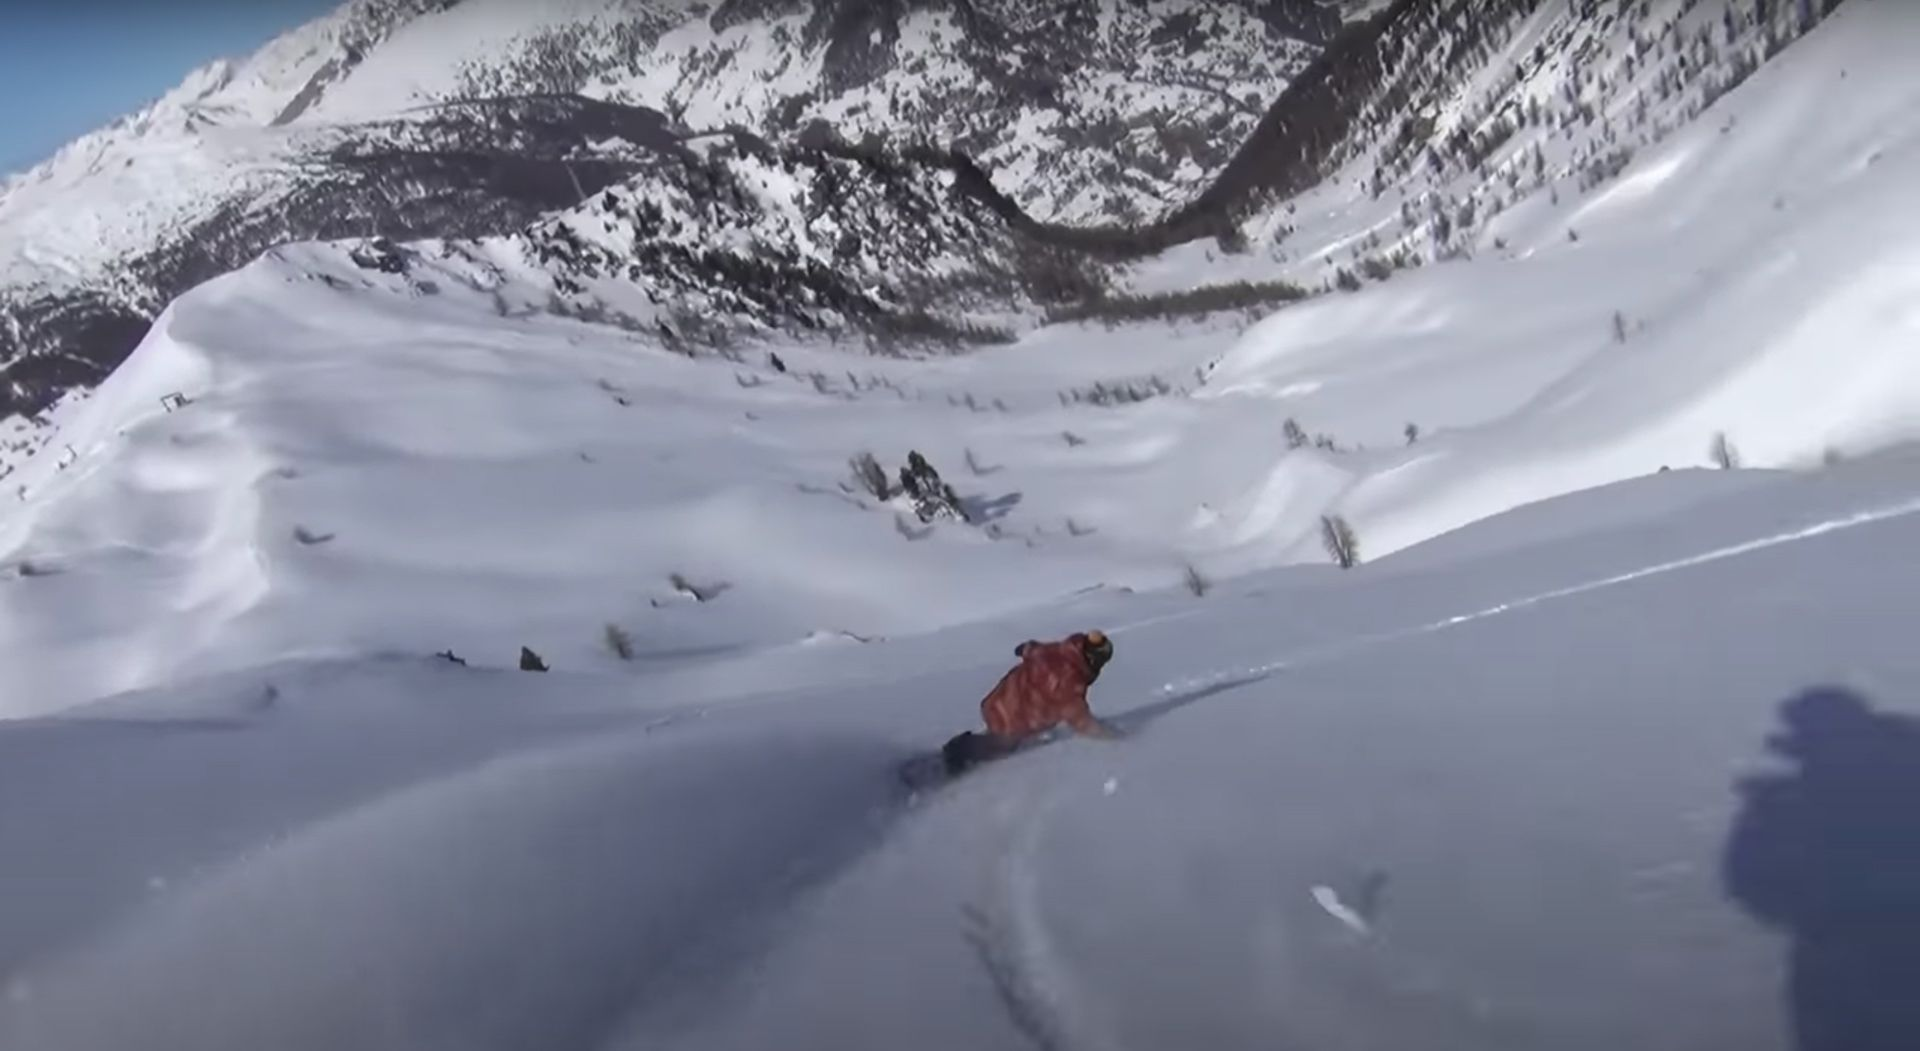 snowboarders going down slope in short movie The Eternal Beauty Of Snowboarding by Jerome Tanon